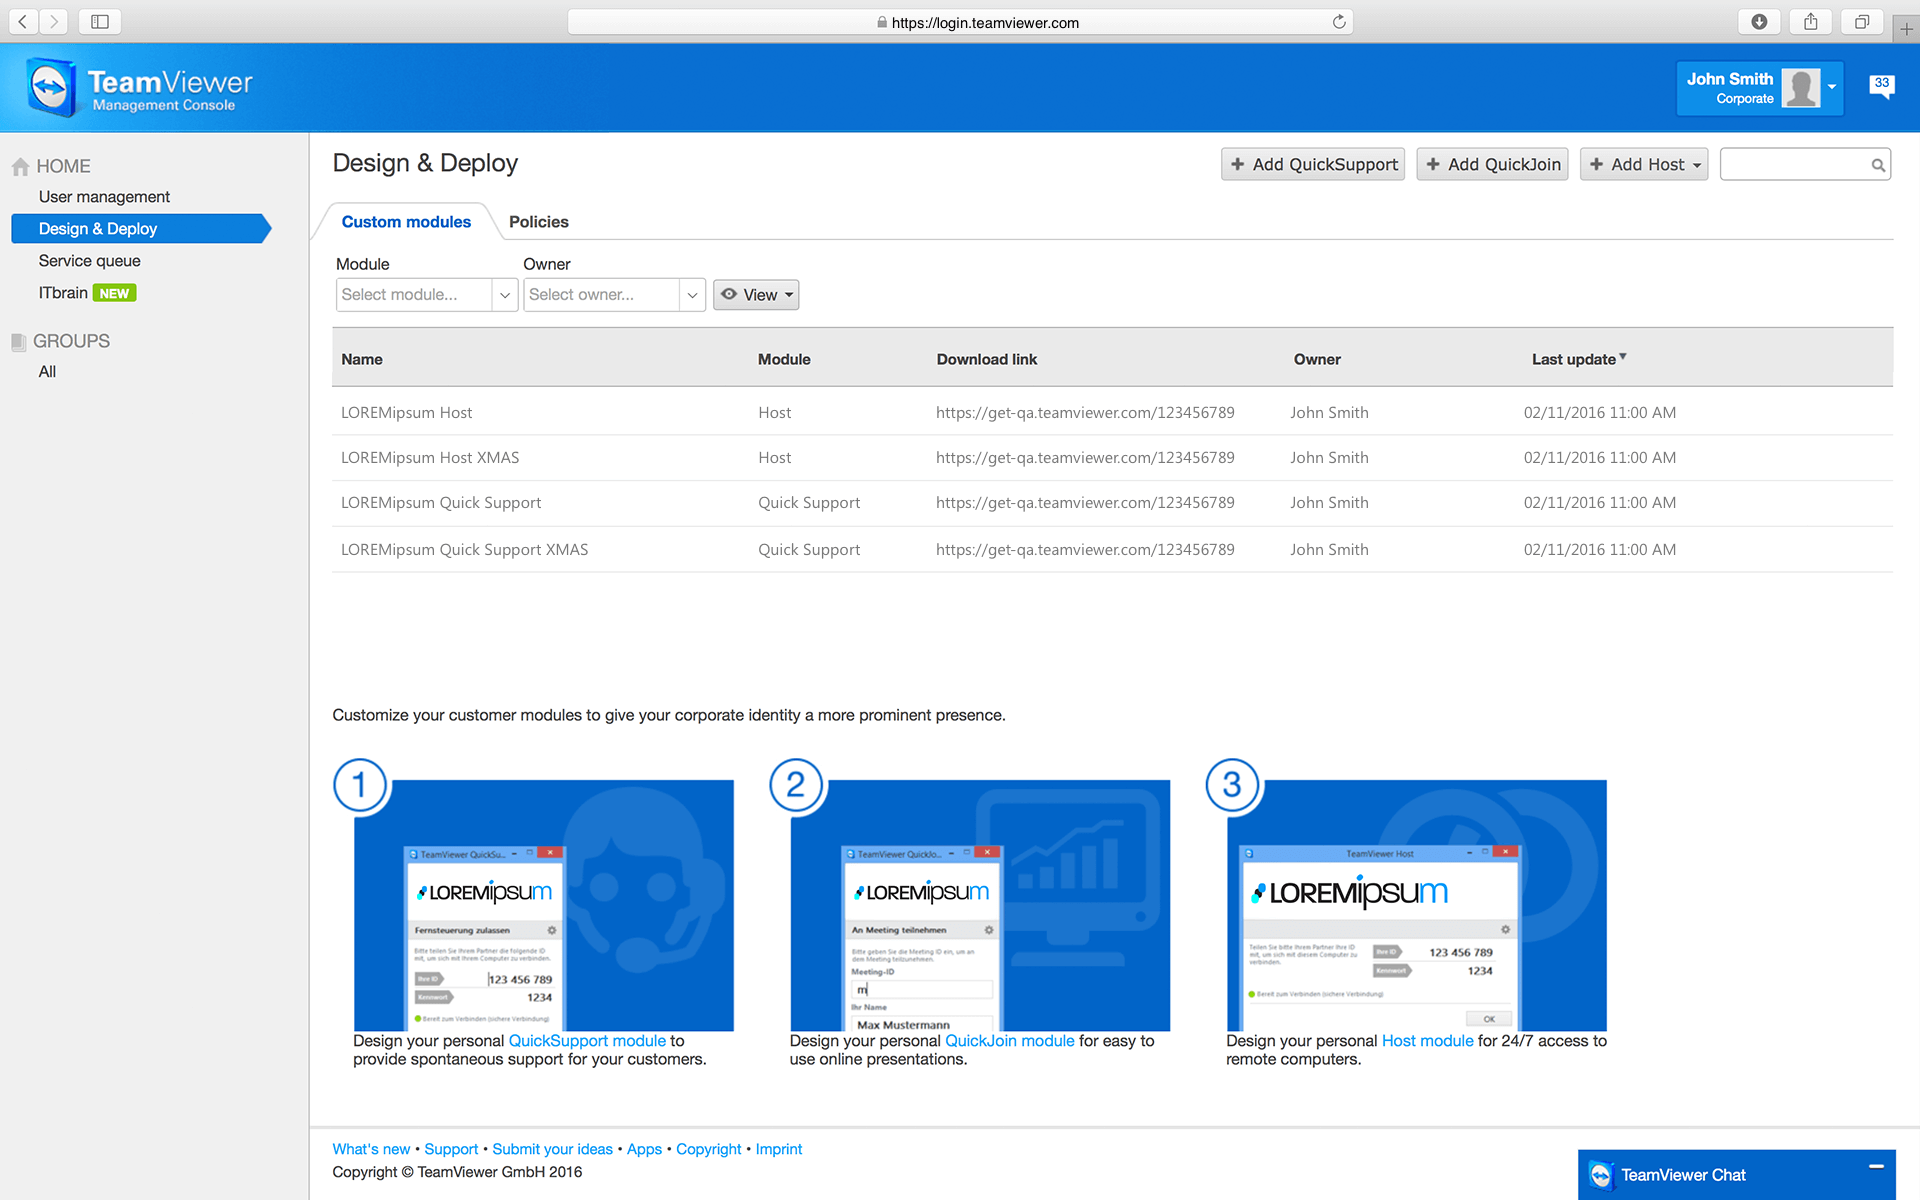 Create customized modules using the TeamViewer Management Console.